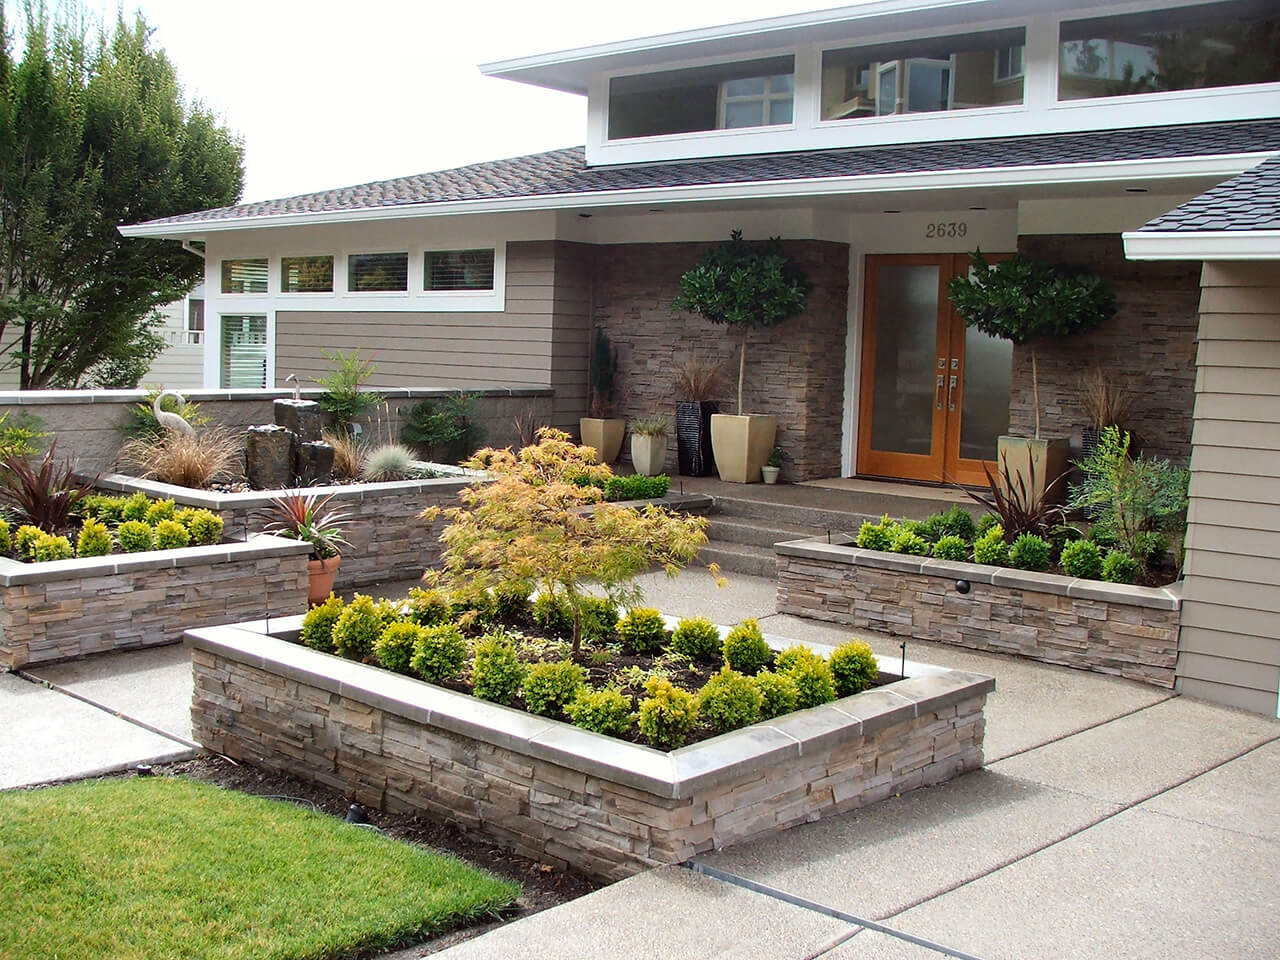 50 best front yard landscaping ideas and garden designs for Garden design ideas for small front yards